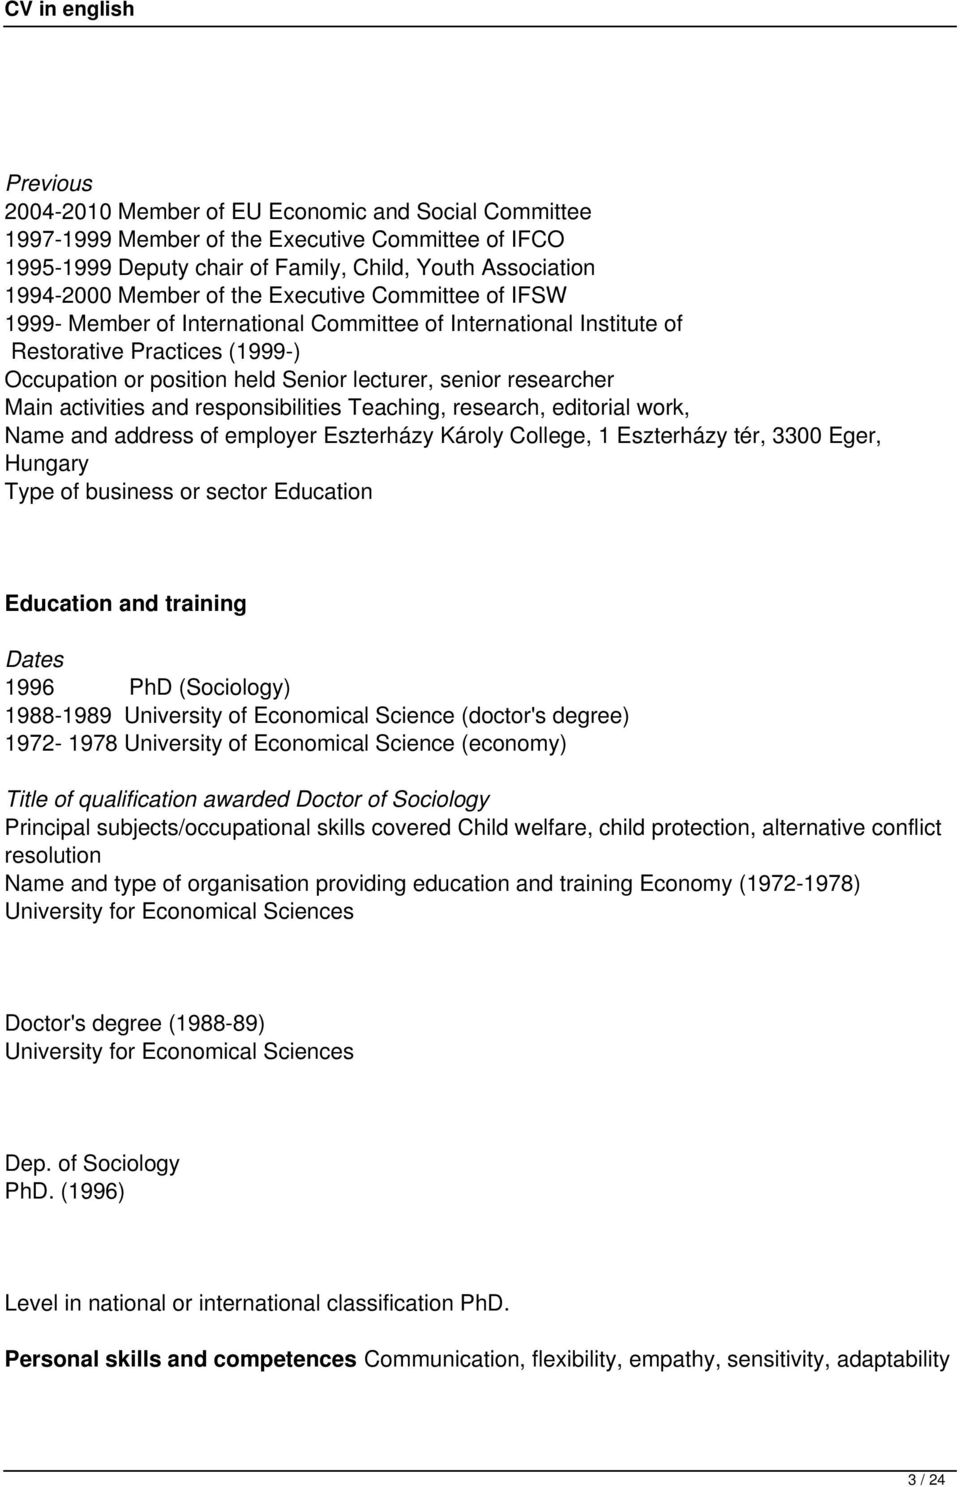 activities and responsibilities Teaching, research, editorial work, Name and address of employer Eszterházy Károly College, 1 Eszterházy tér, 3300 Eger, Hungary Type of business or sector Education